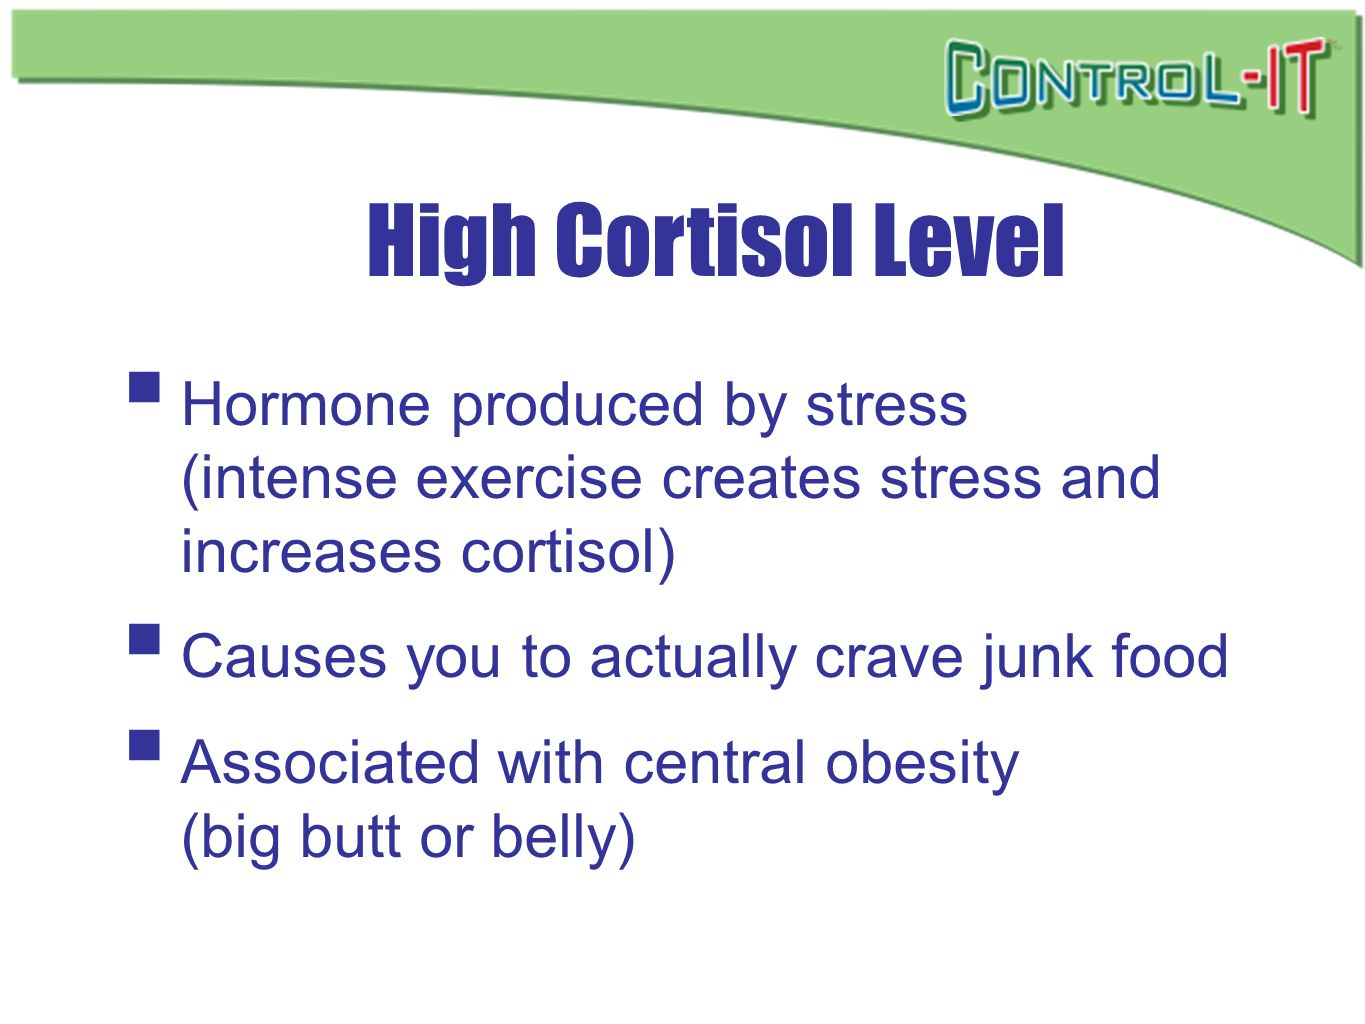 High Cortisol Level Hormone produced by stress (intense exercise creates stress and increases cortisol)